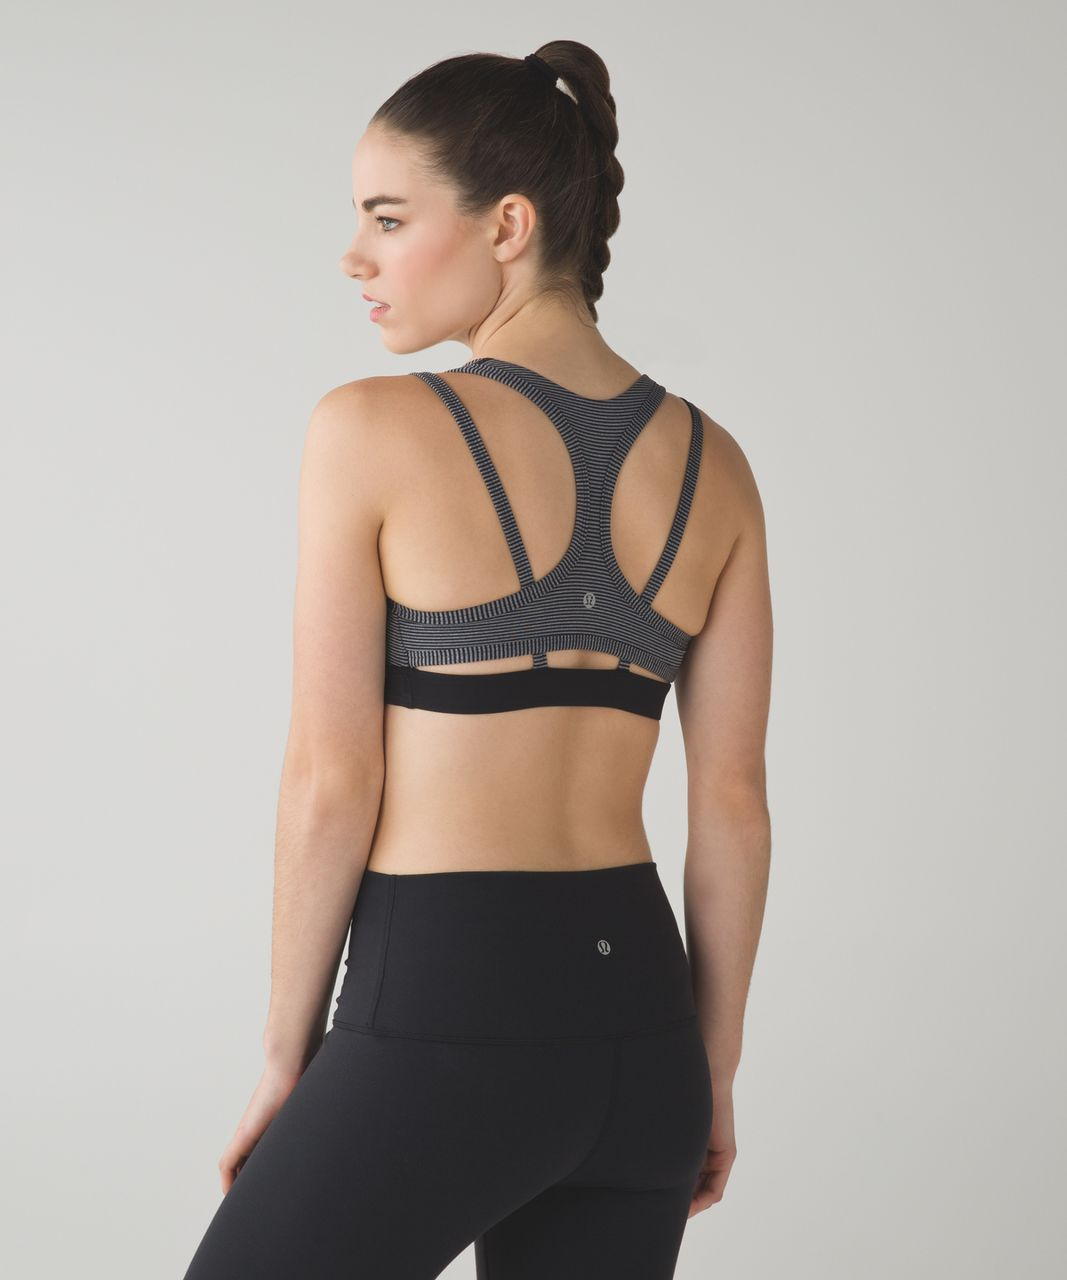 Lululemon Splendour Bra - Tonka Stripe Black Heathered Slate / Black